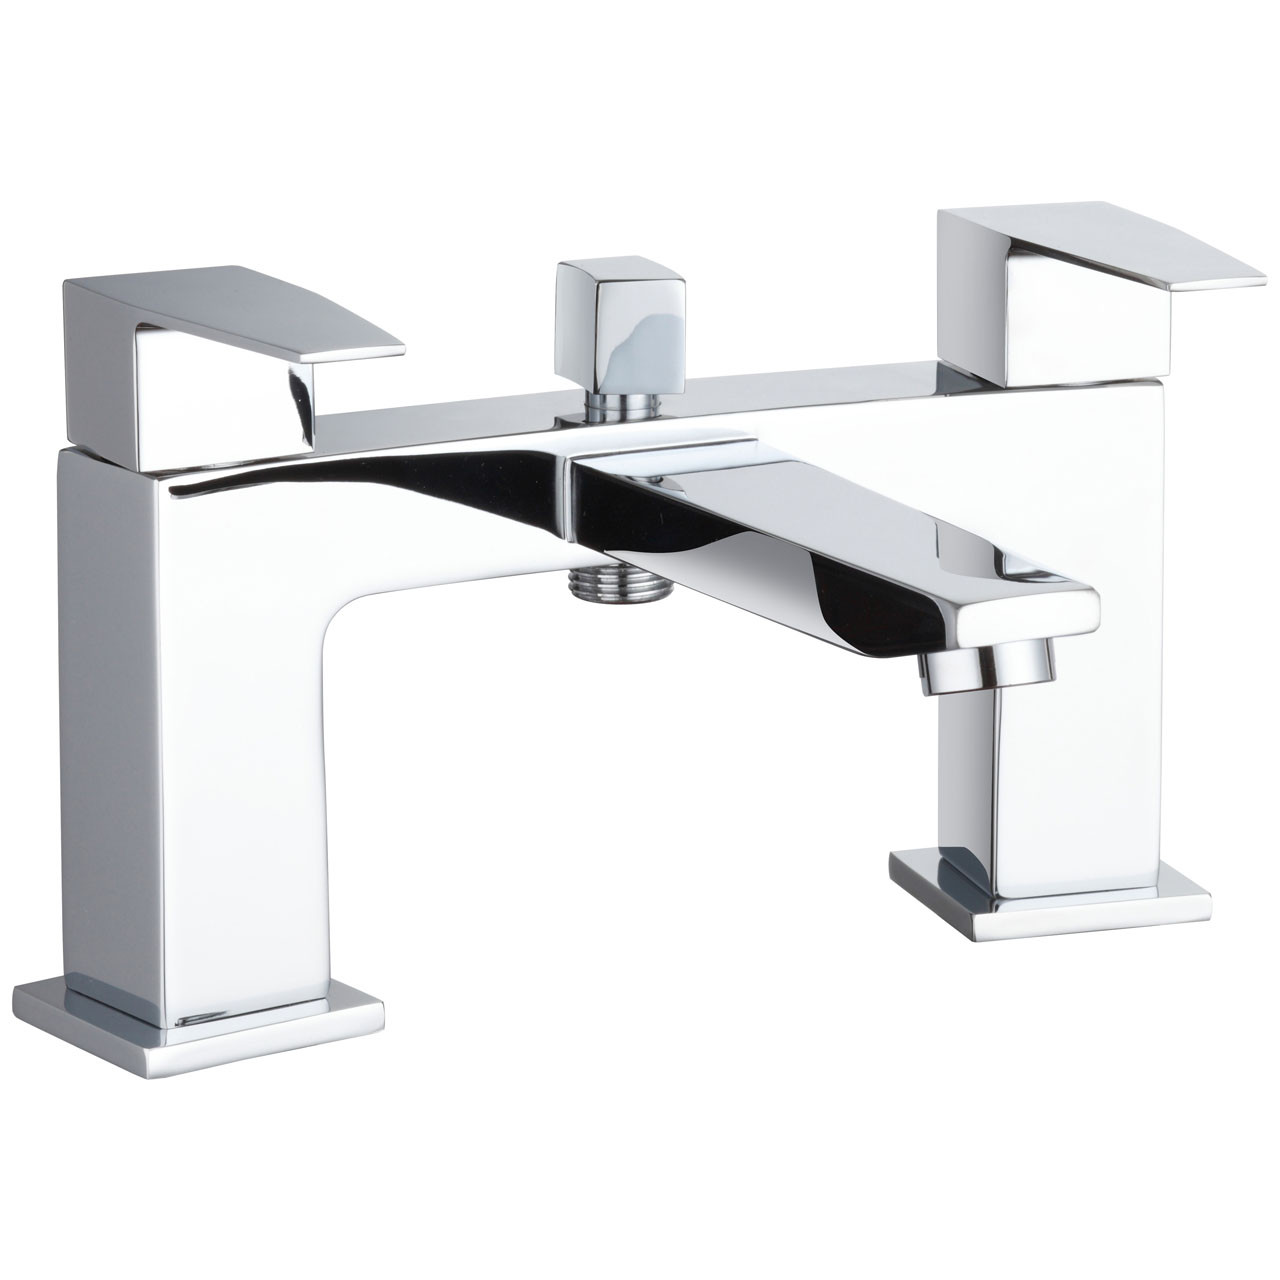 Nuie Camber Bath and Shower Mixer Tap - CAM304